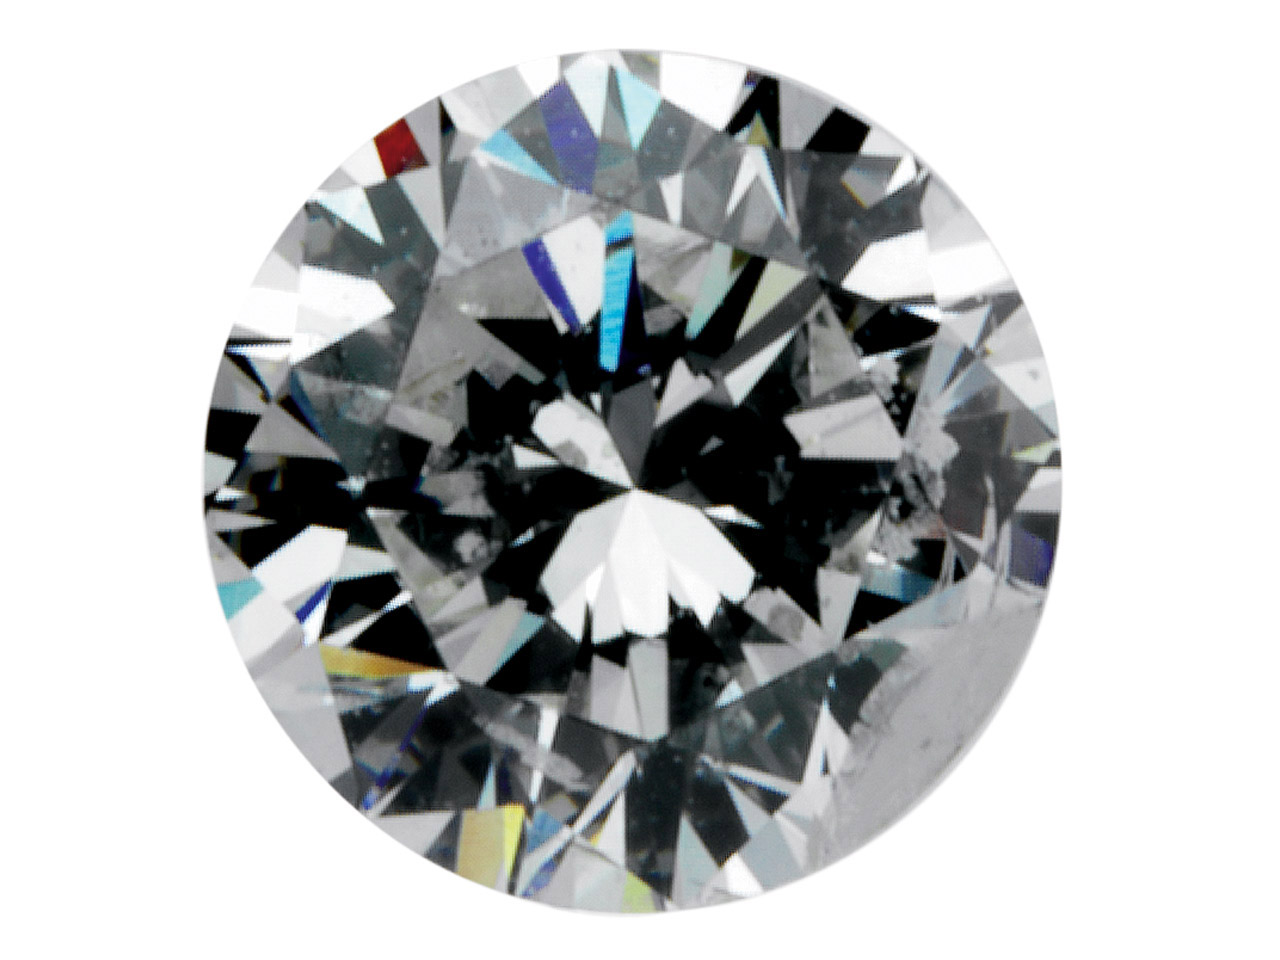 Diamond, Round, G/vs, 2pt/1.7mm